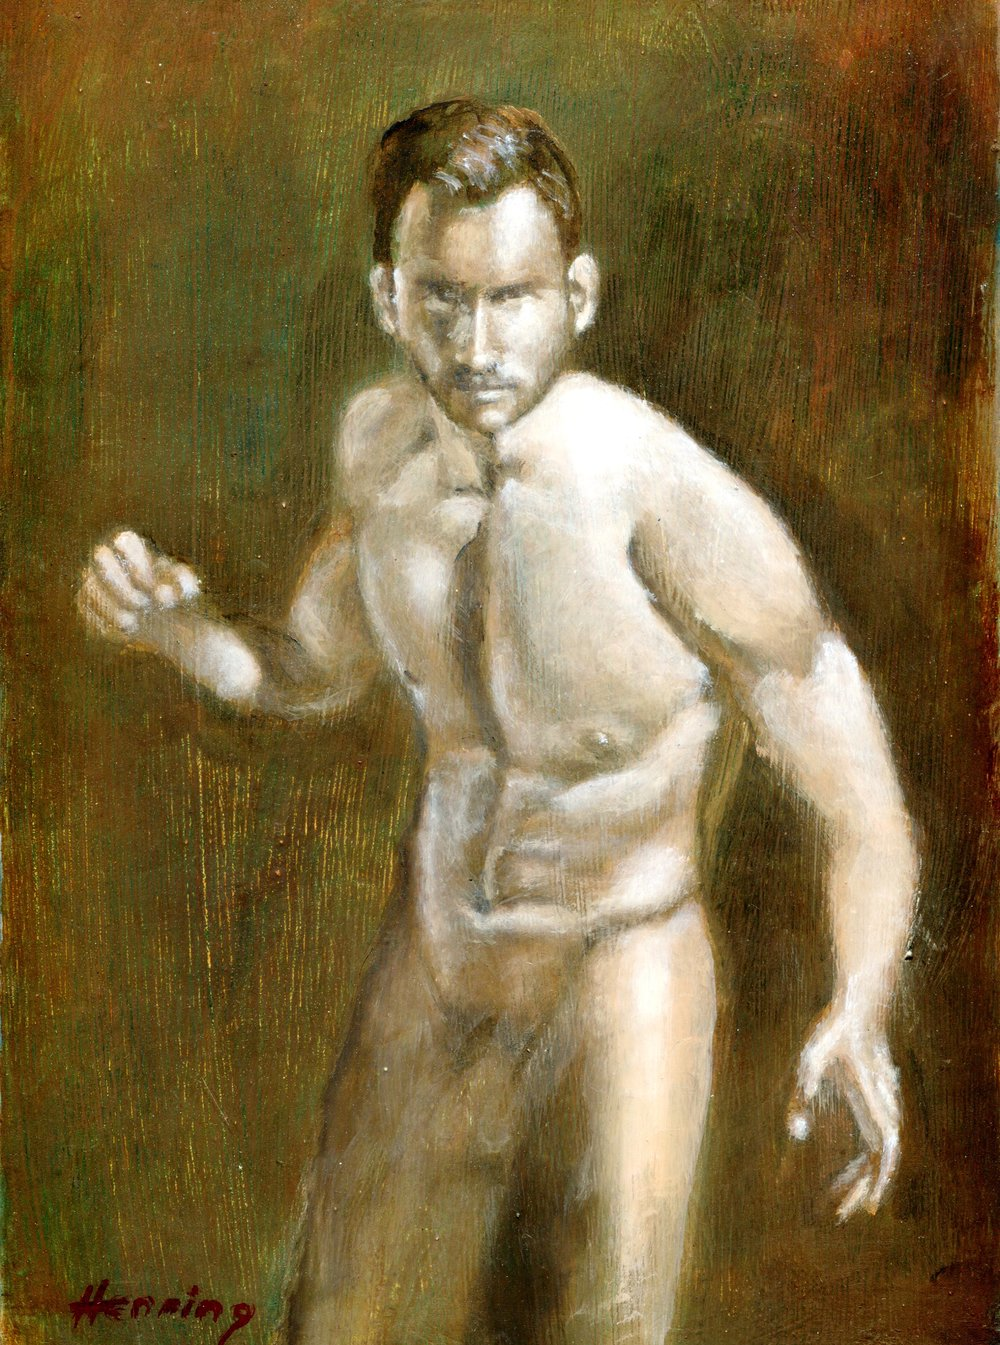 28B DENNIS HENNING, NUDE, OIL ON BOARD